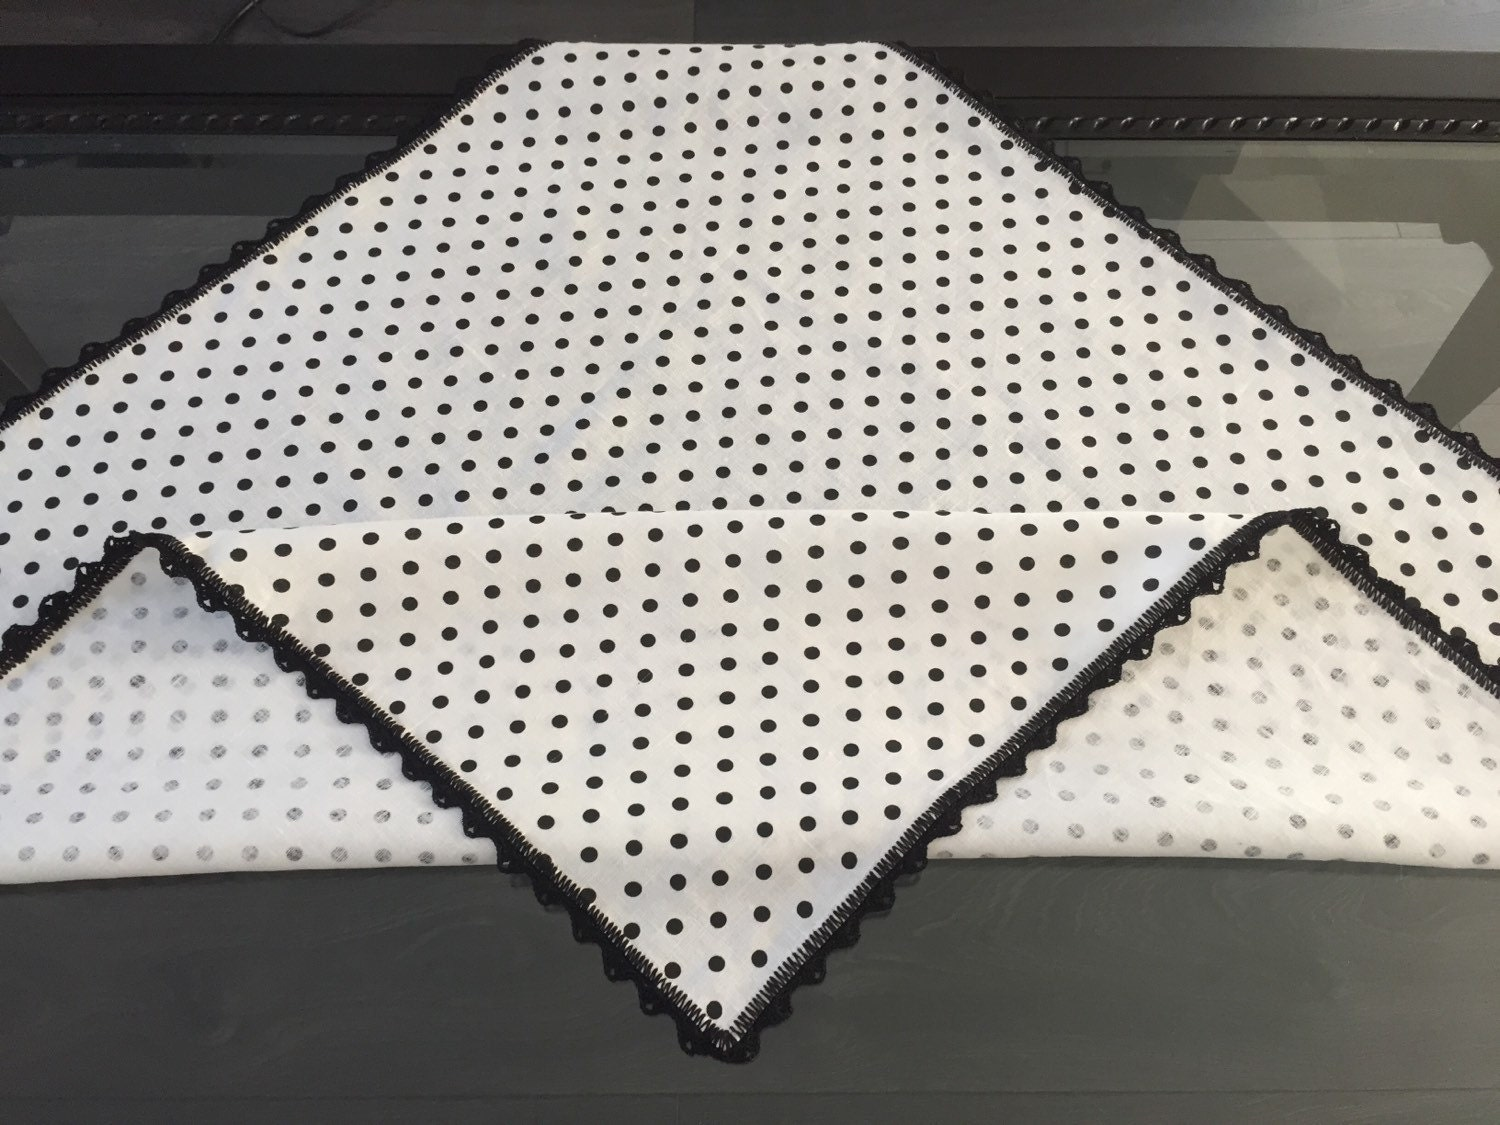 Linen White And Black Polka Dot Table Runner By Karilora